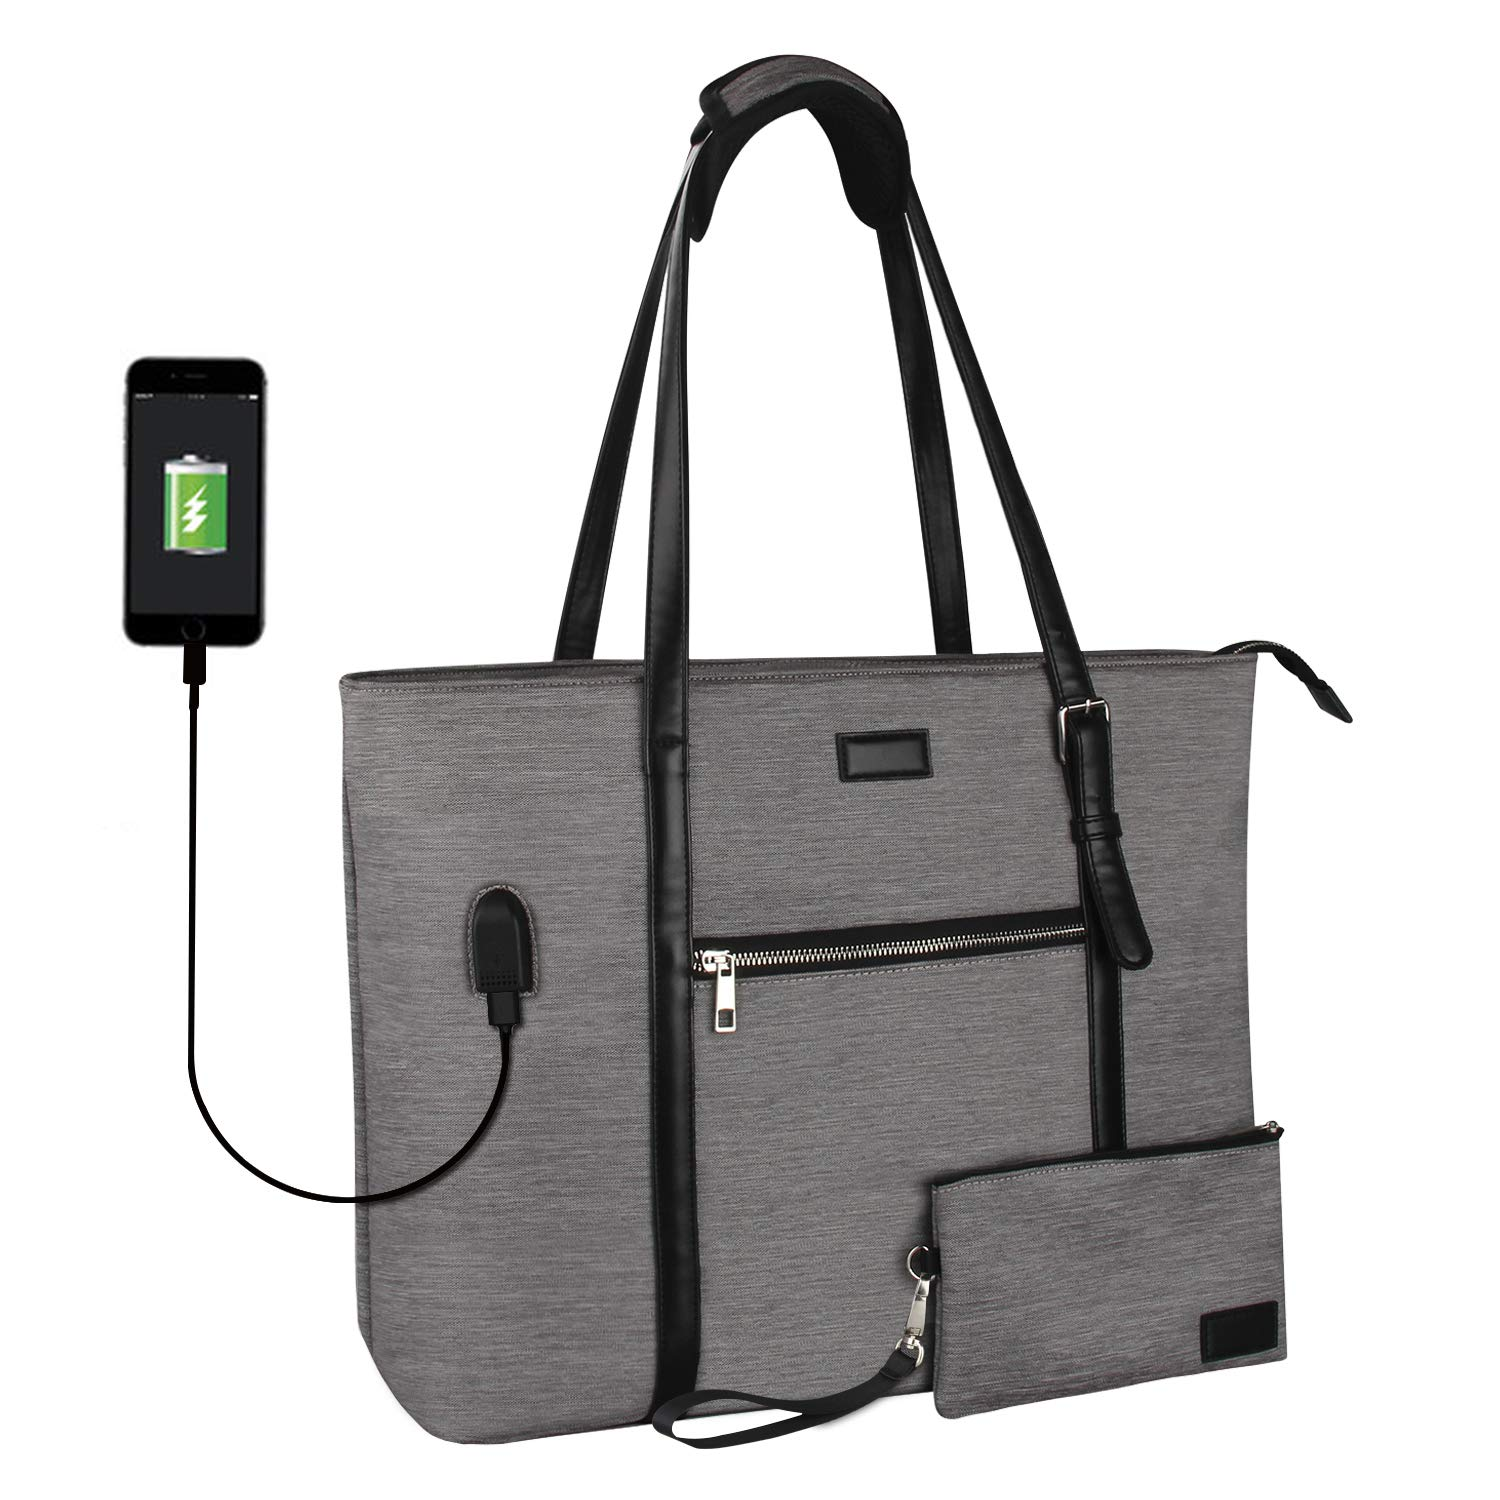 Laptop Tote Bag, Large Work Bag Purse Fits 15 Inch Laptop, Multiple Compartments and Pockets Teacher Bag Organizer Water Resistant with USB Port, Adjustable Strap ... (Gray)